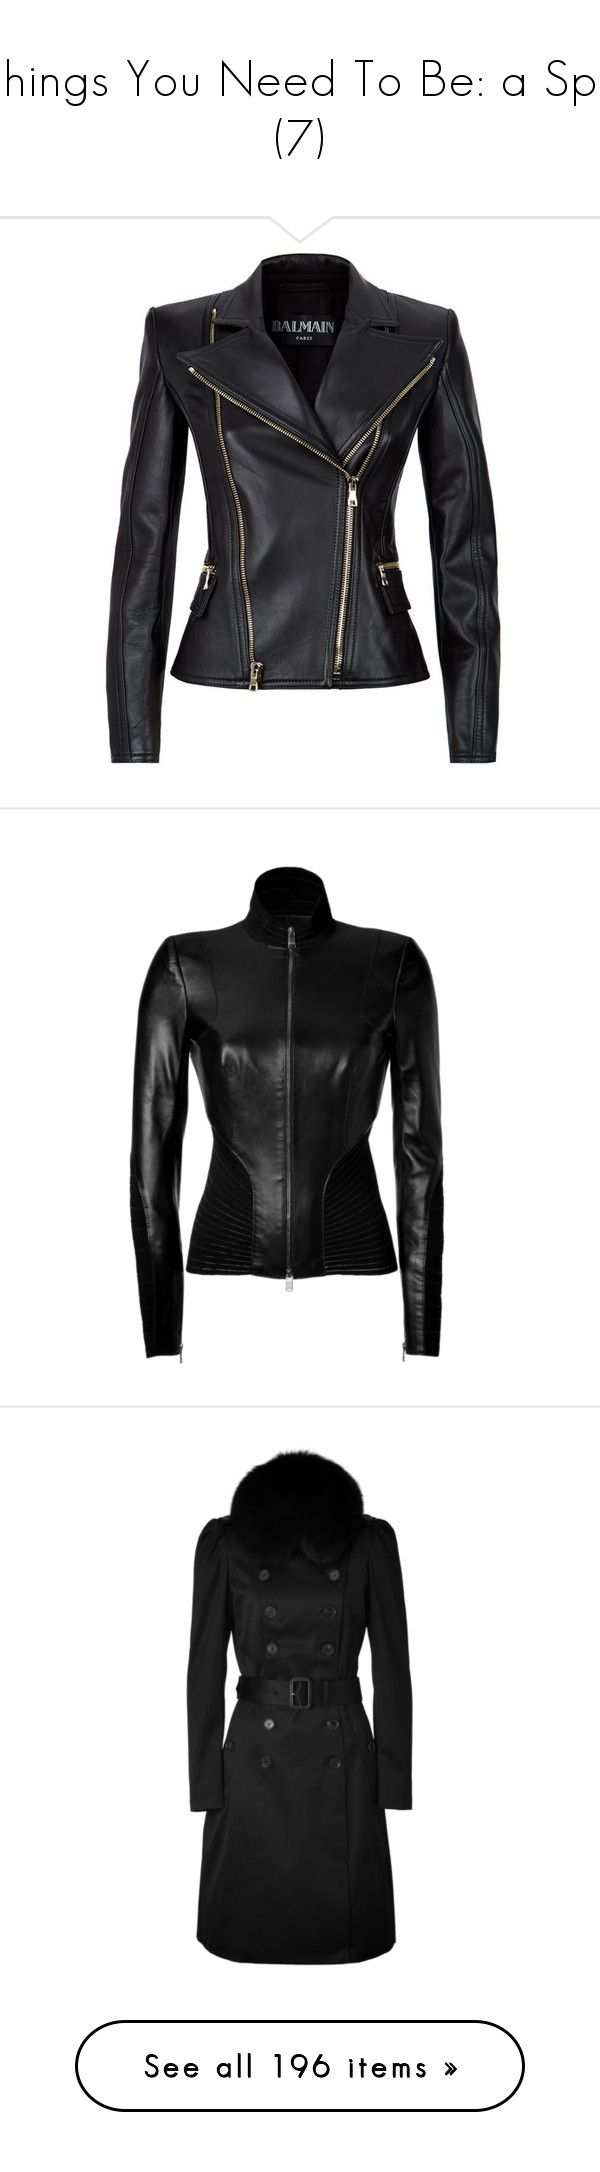 """Things You Need To Be: a Spy (7)"" by o-hugsandkisses-x ❤ liked on Polyvore featuring outerwear, jackets, tops, balmain, coats & jackets, biker jacket, lamb leather jacket, rider jacket, pocket jacket and lambskin jacket"